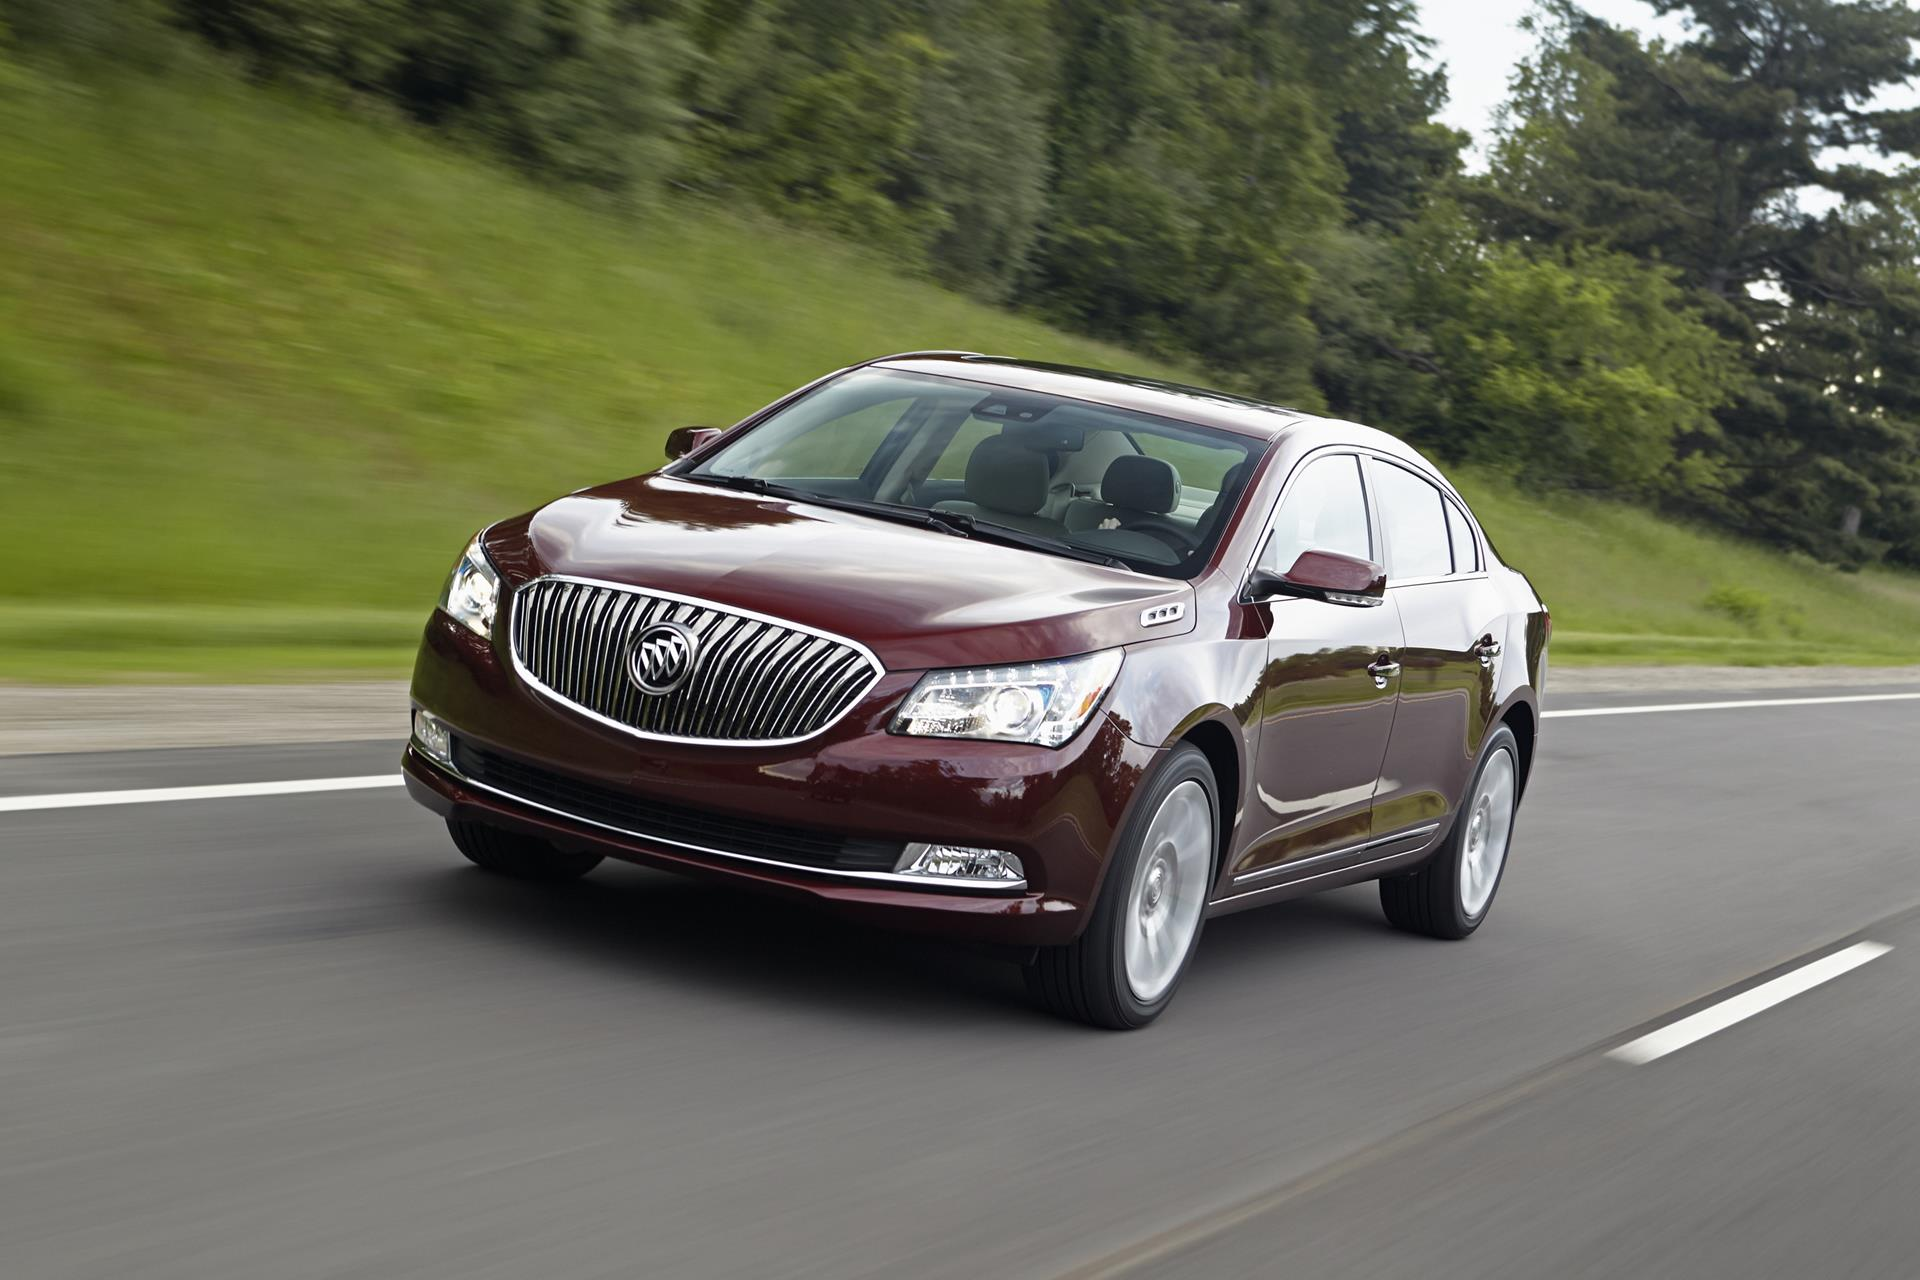 2016 buick lacrosse news and information. Black Bedroom Furniture Sets. Home Design Ideas